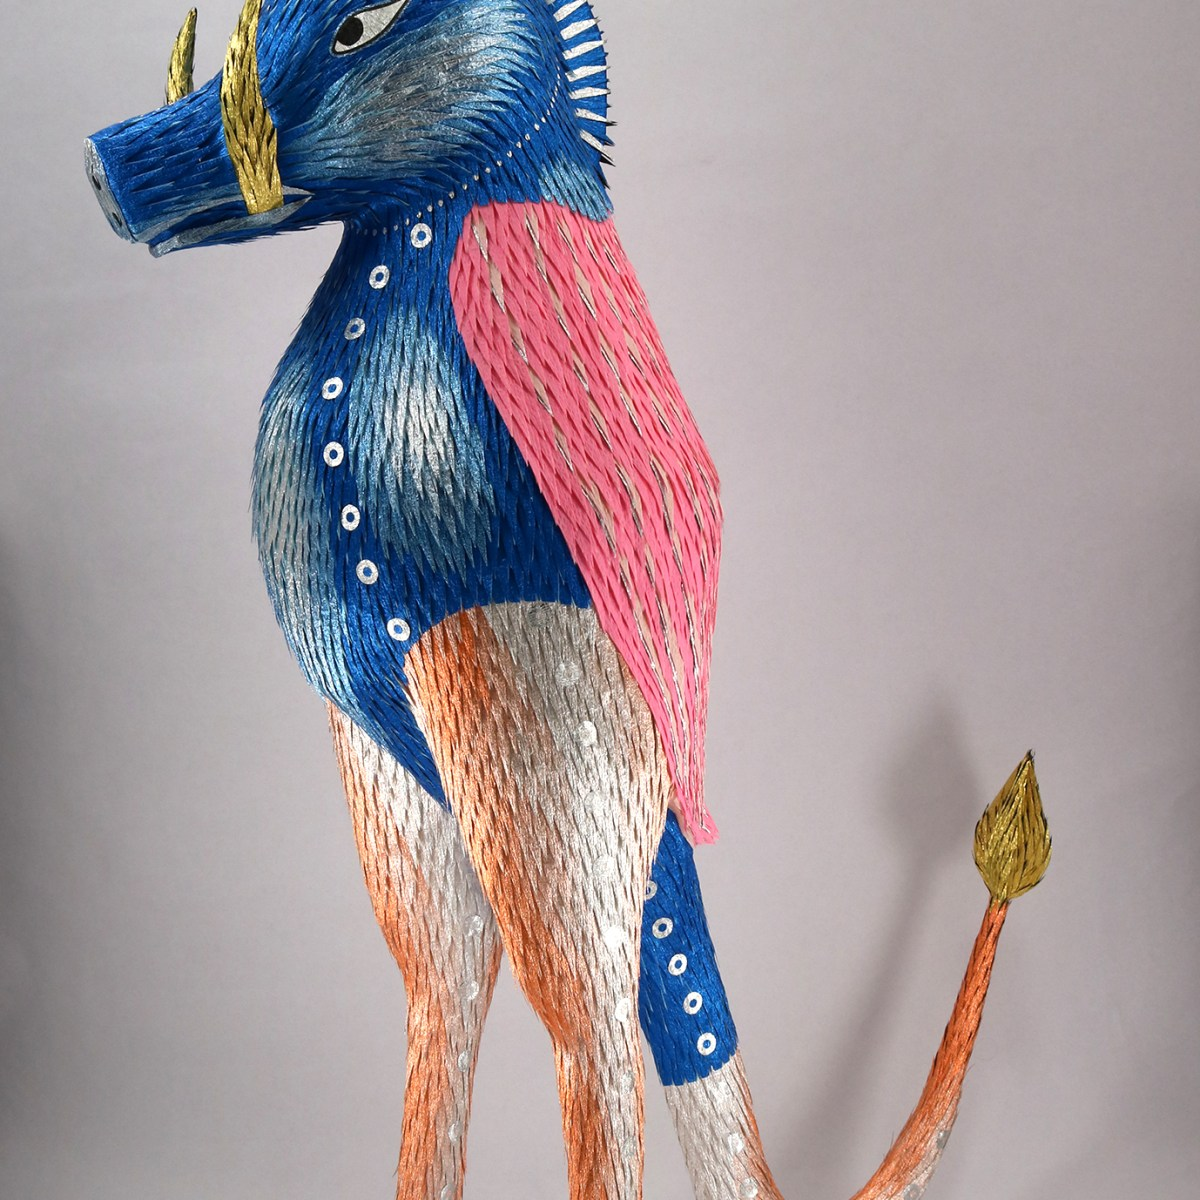 A beast, adorned with bright blue, pink and silver scales, stands upright with its front legs crossed behind its back, its tail flared behind it like obedient coat tails and its tusks curved skyward, glimmering gold. Its ears are pointed and eyes set forward.